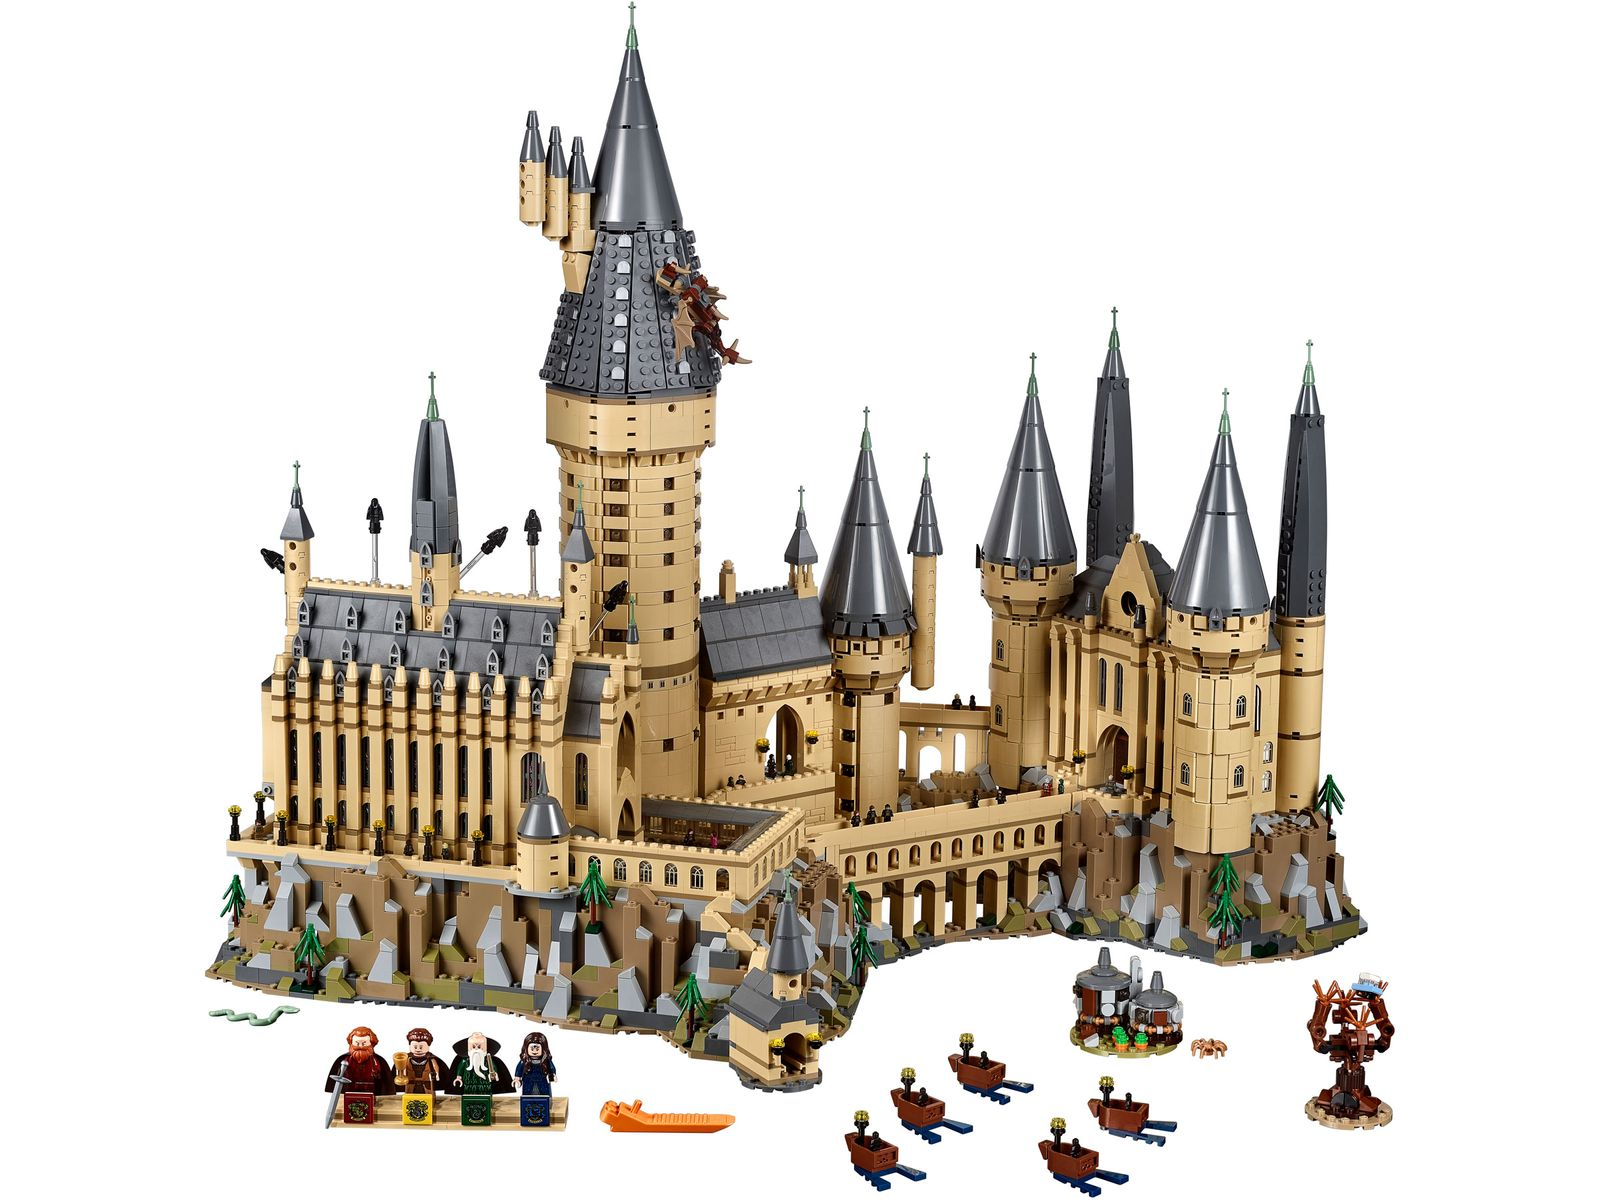 Us Inspire And Develop The Builders Of Tomorrow Lgs Slim Fit Youth Boy Giant Leap Merah S Hogwarts Castle